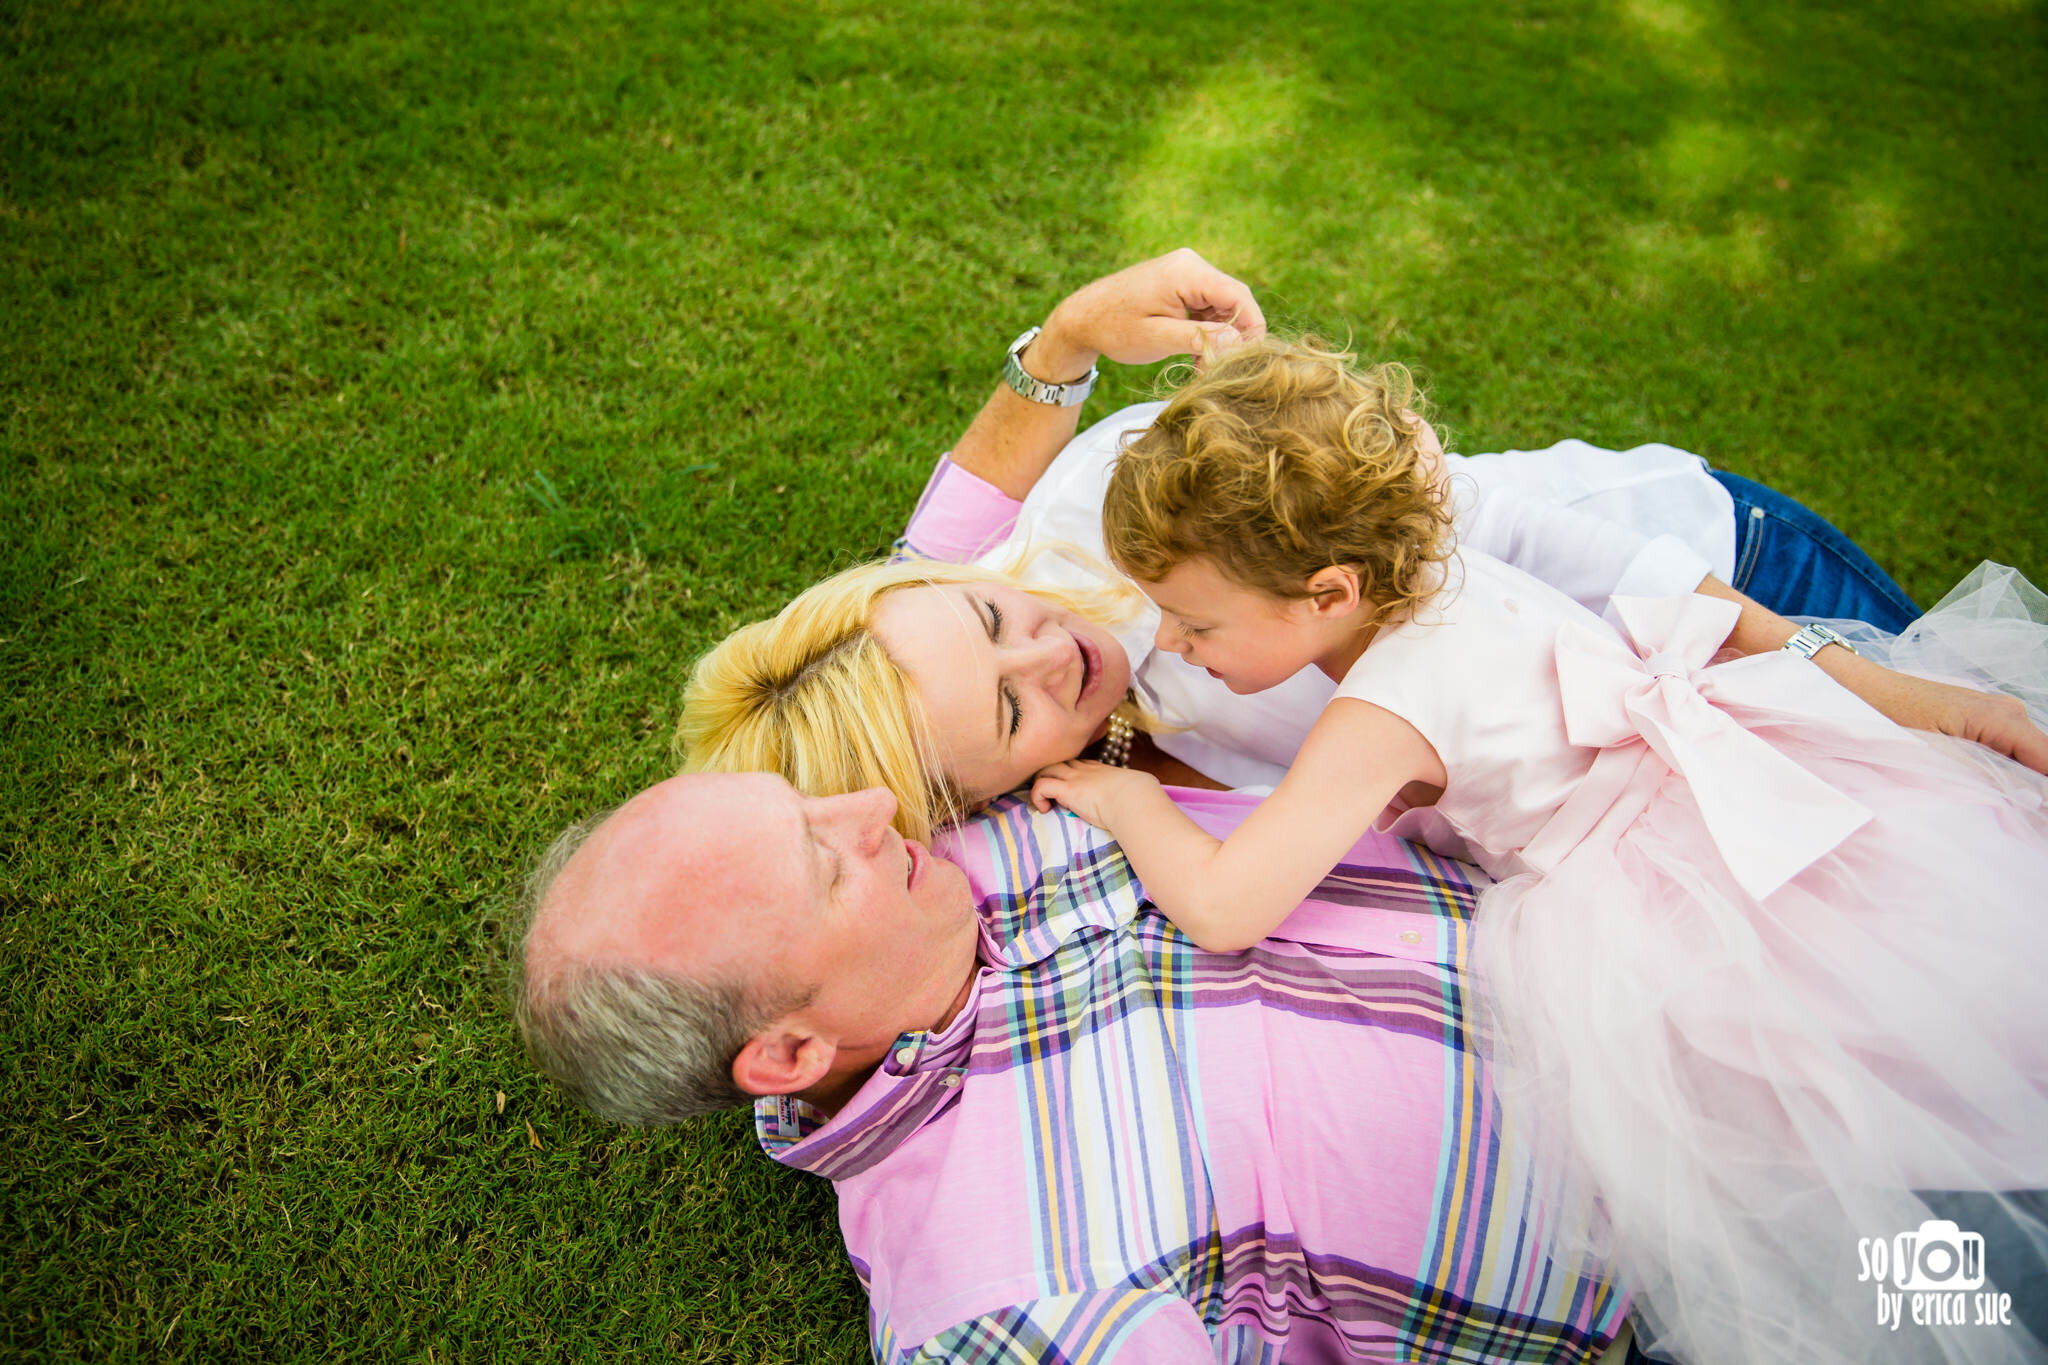 so-you-by-erica-sue-south-florida-extended-family-lifestyle-photo-session-2238.JPG